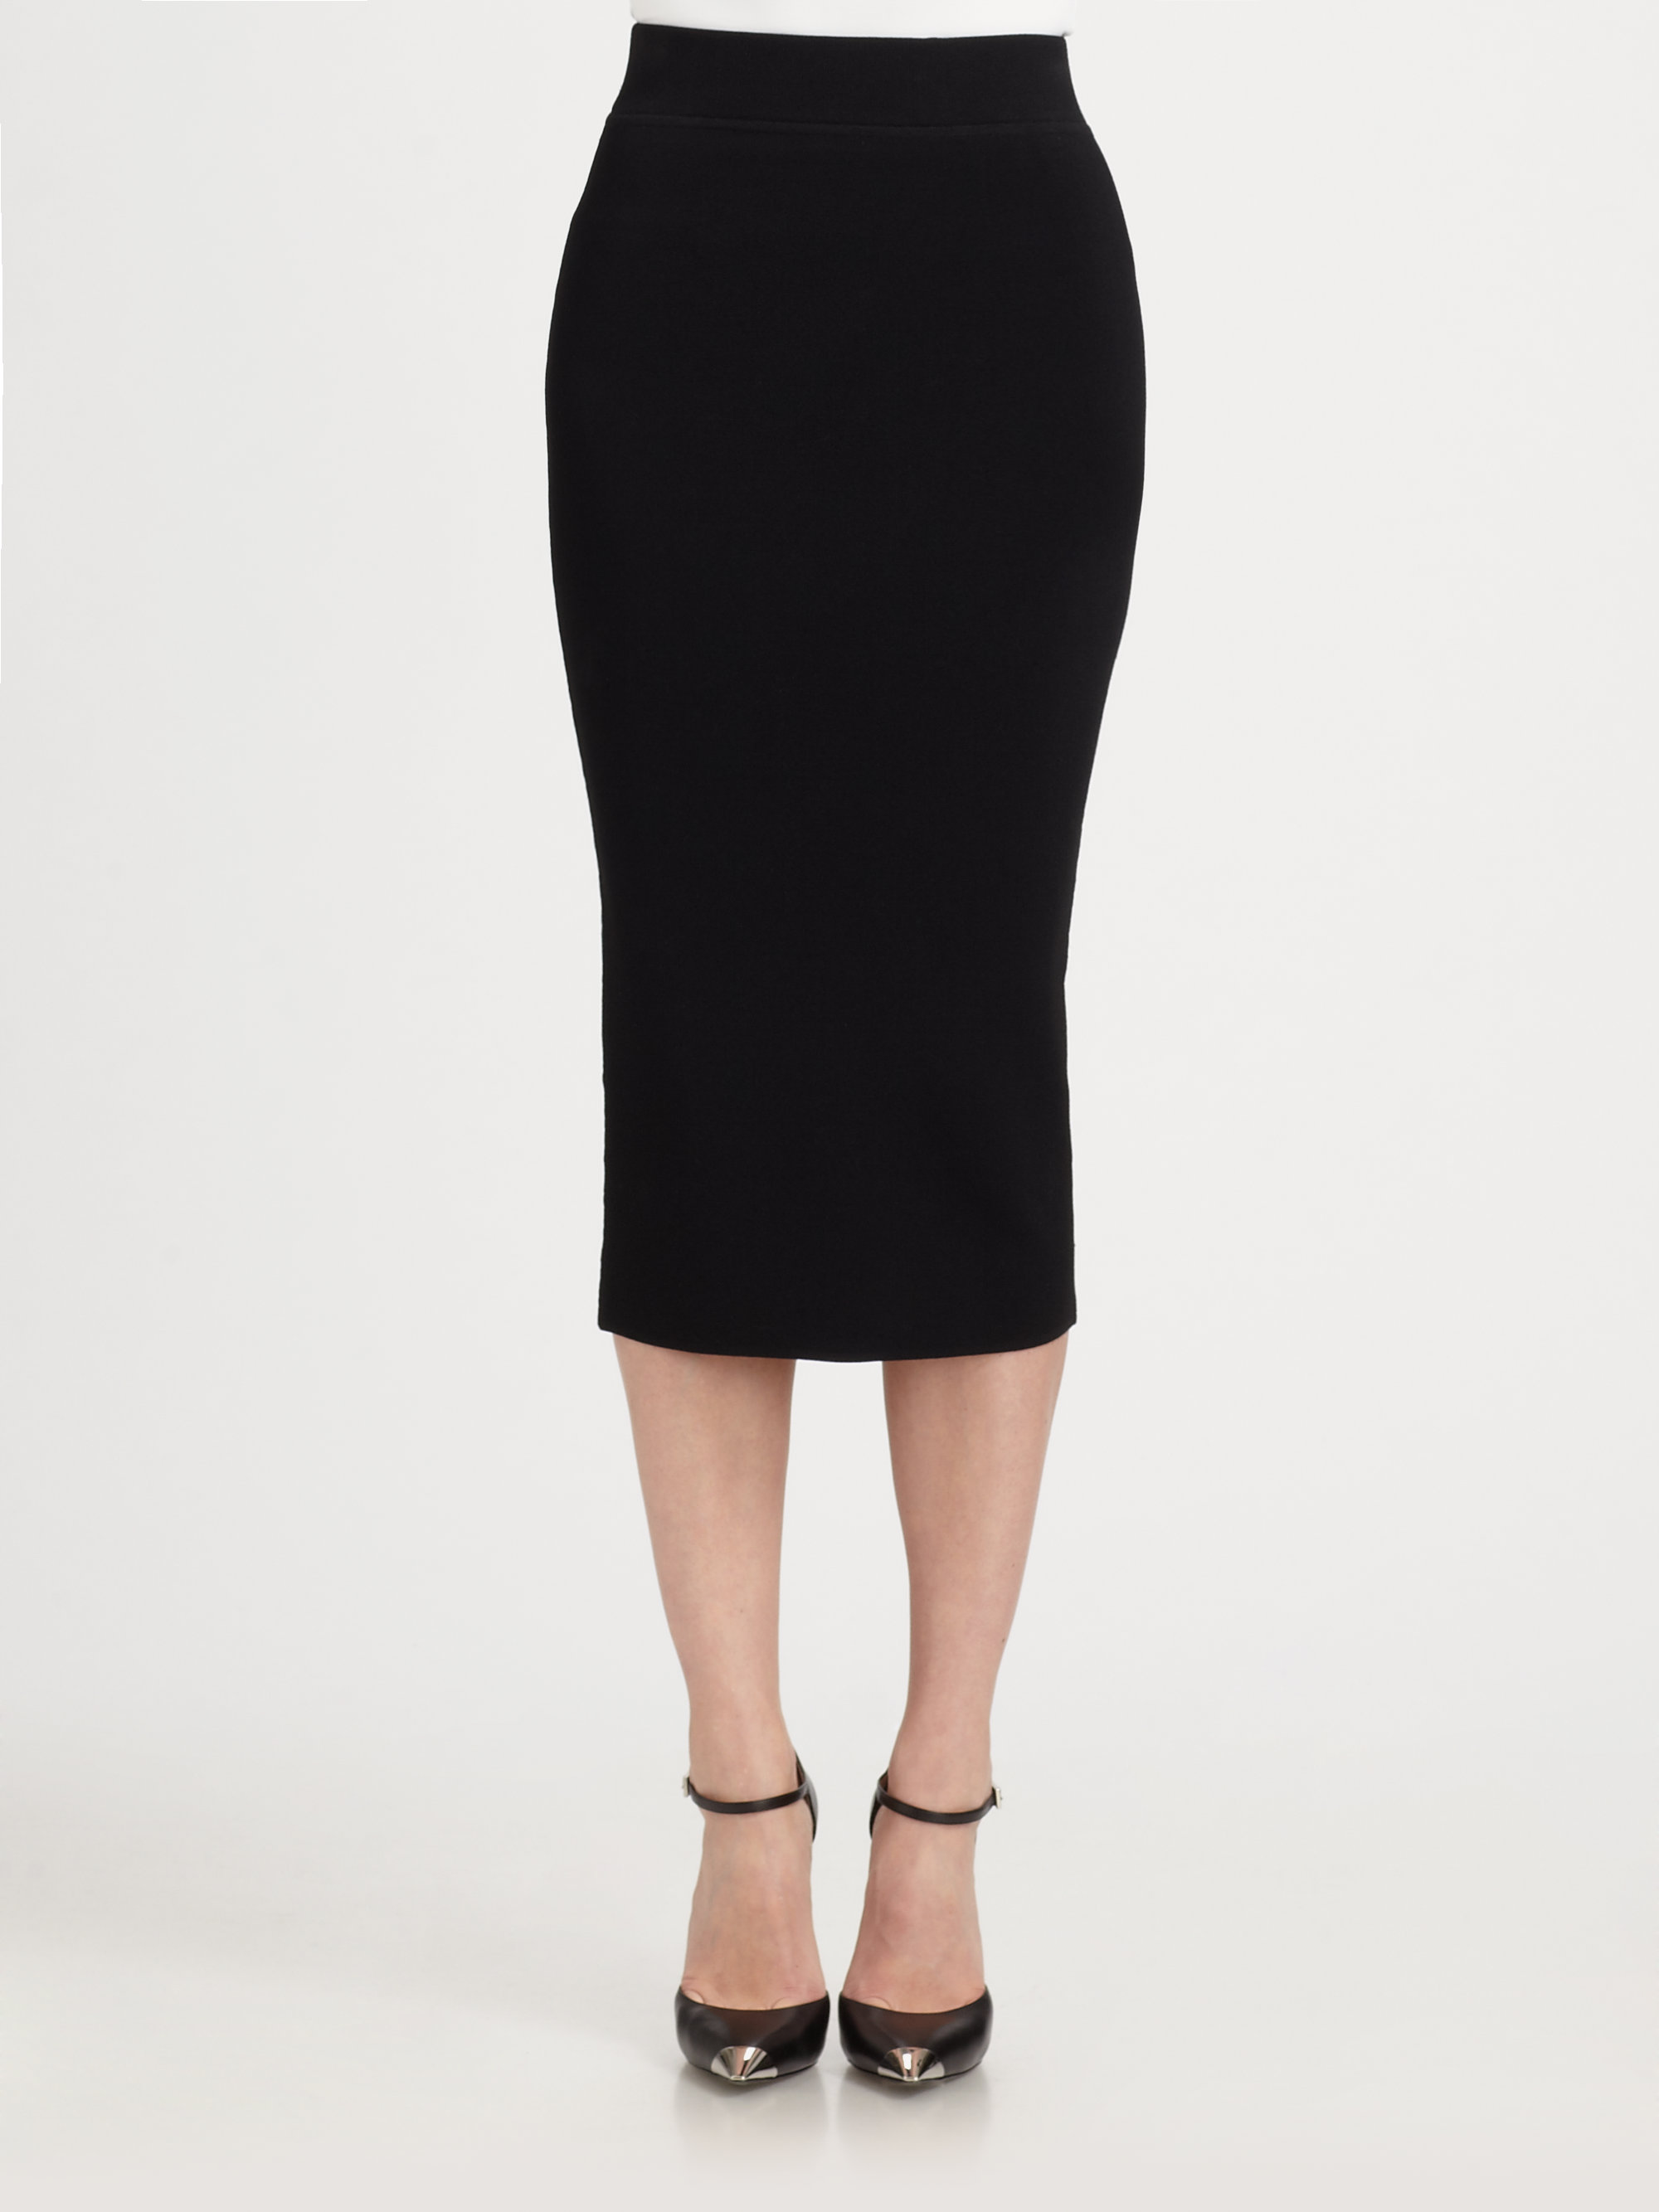 Michael kors Stretch Matte Jersey Pencil Skirt in Black | Lyst